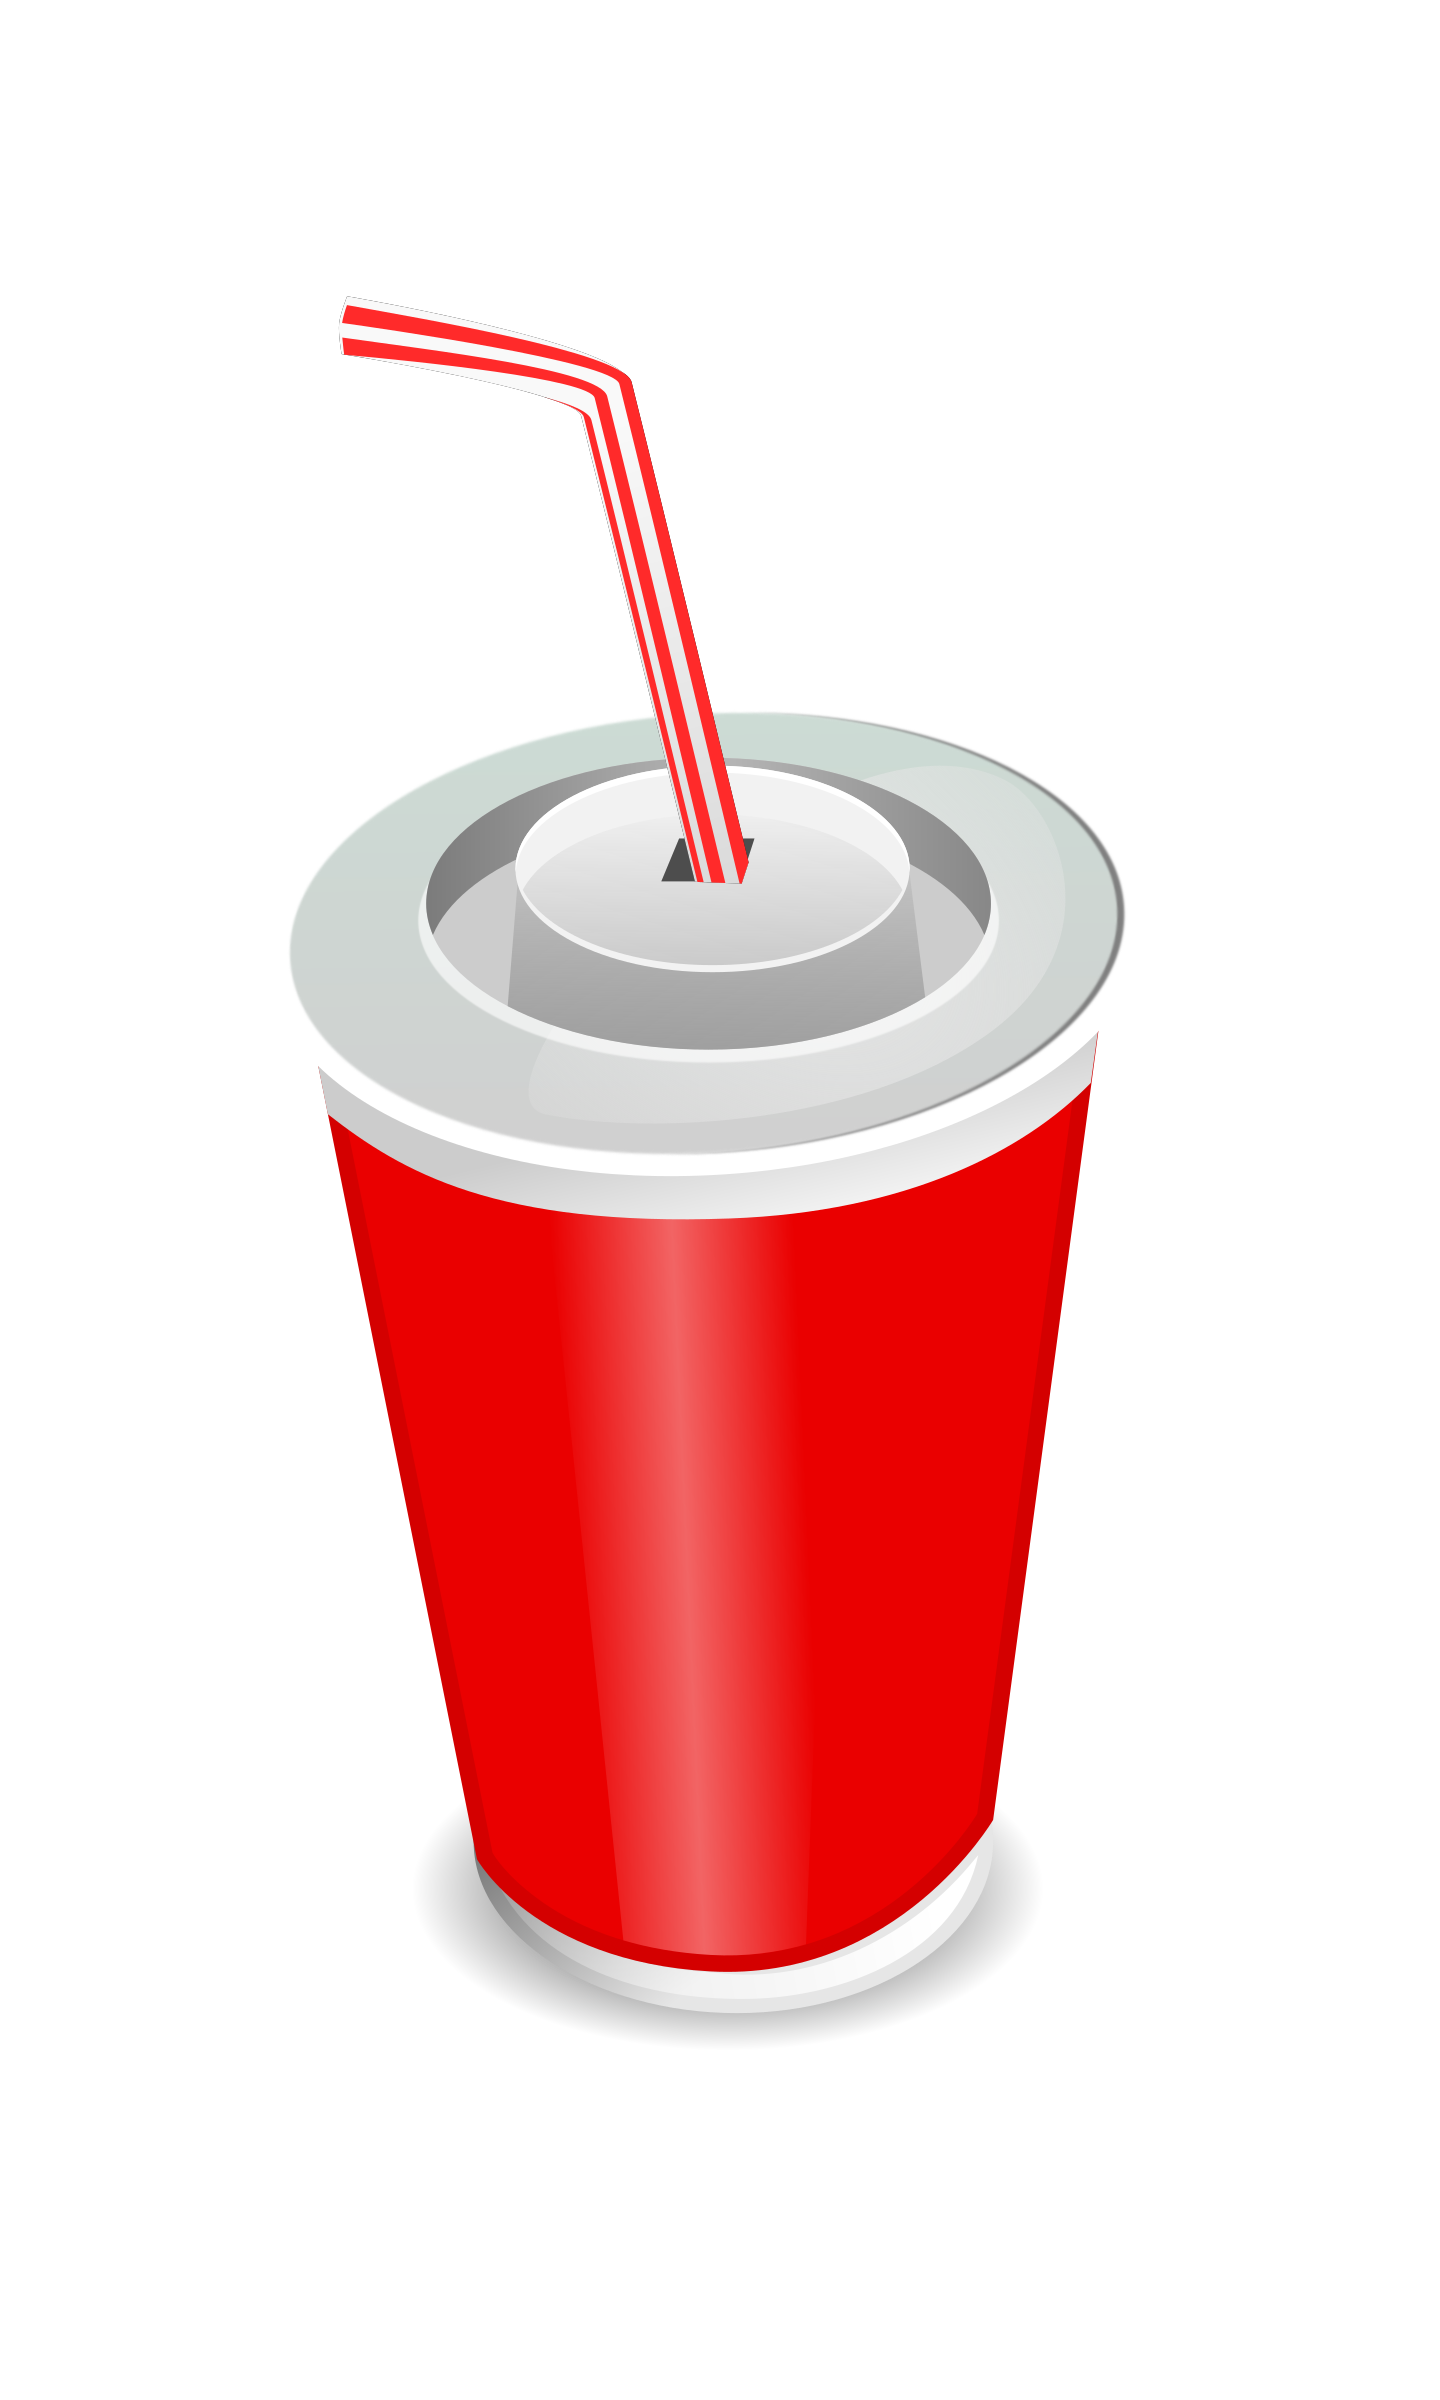 Softdrink by gnokii pinterest. Napkin clipart cocktail